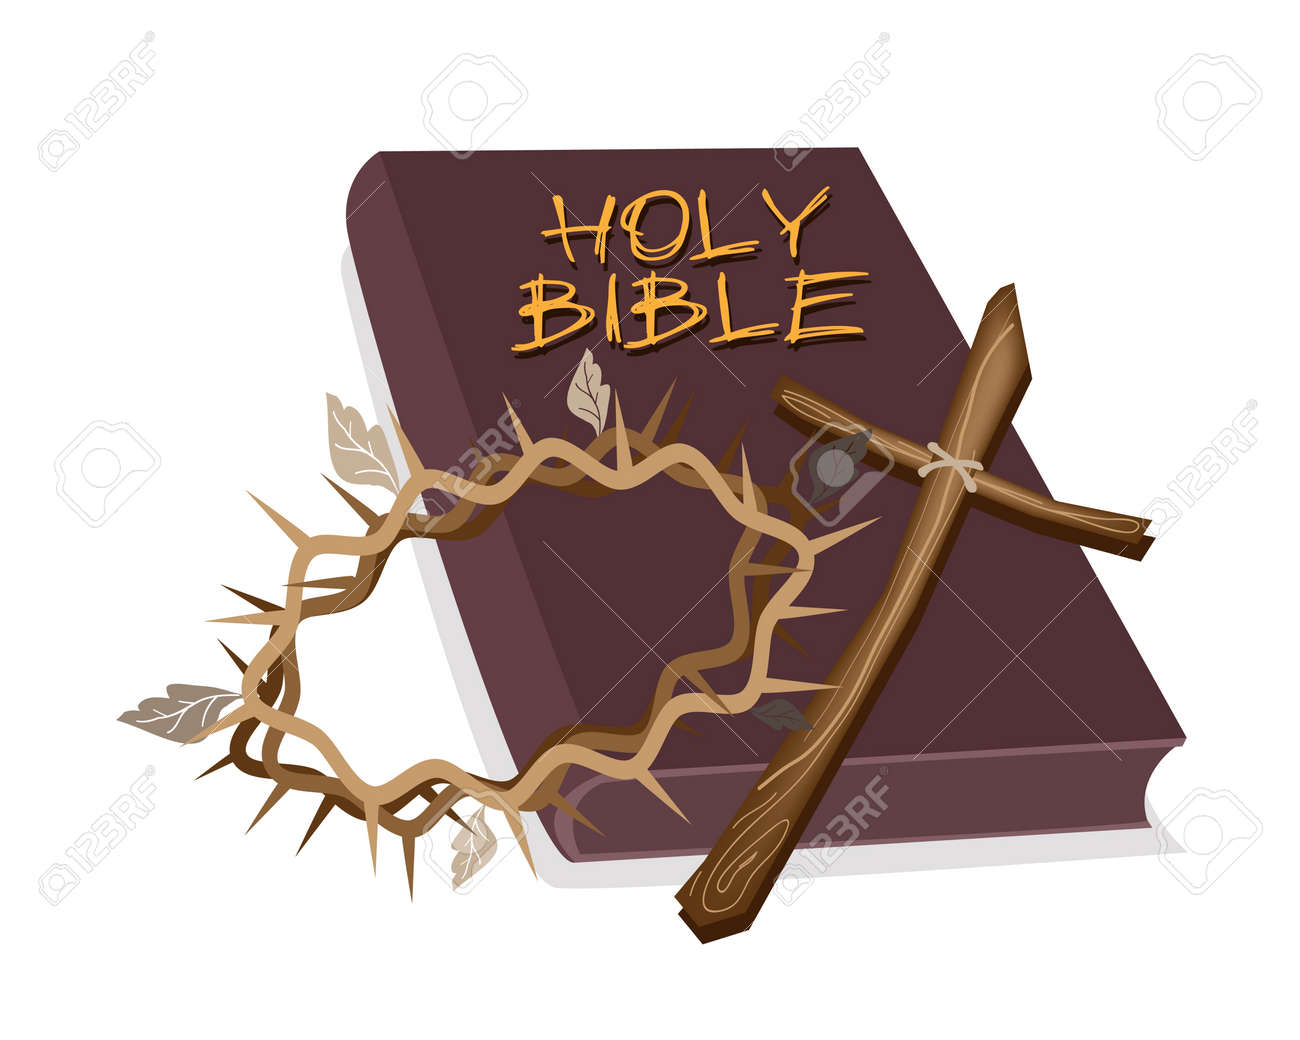 An Illustration of Brown Covered Bible with Wooden Cross and A Crown of Thorn, The Foundation of Christianity Stock Vector - 18627268